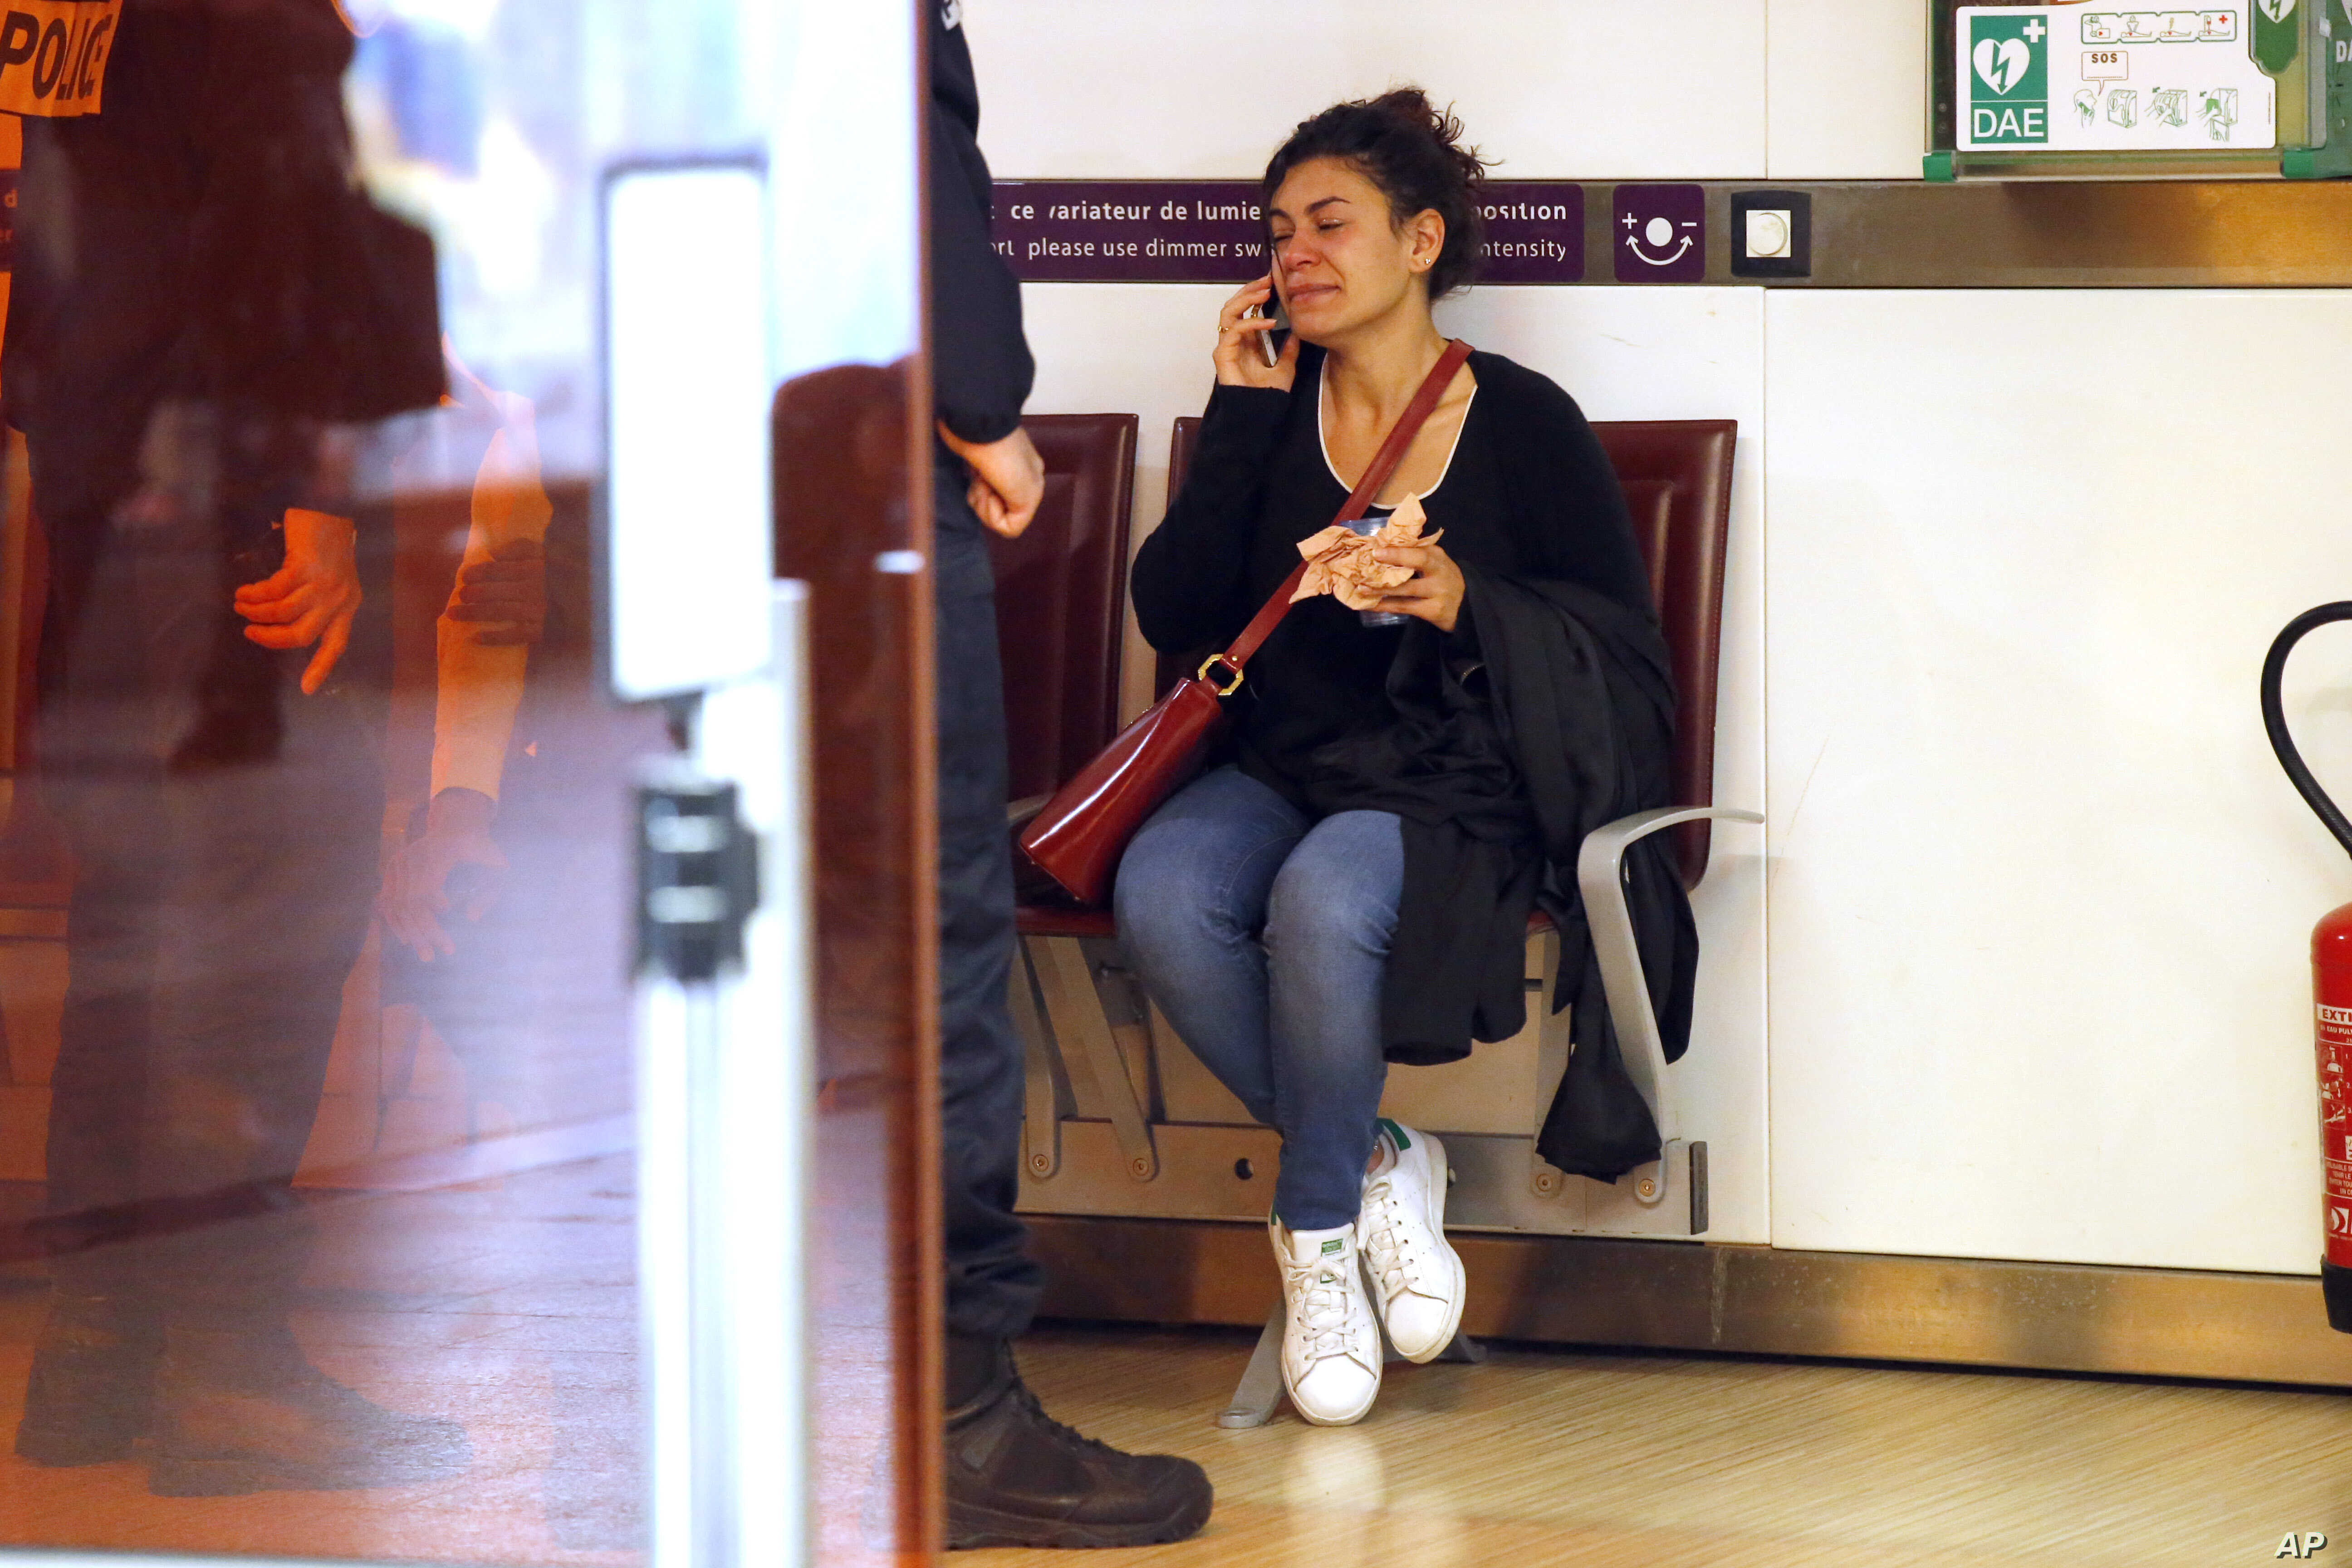 A relative of the victims of the EgyptAir flight 804 that crashed, reacts as she makes a phone call at Charles de Gaulle Airport outside of Paris, Thursday, May 19, 2016.